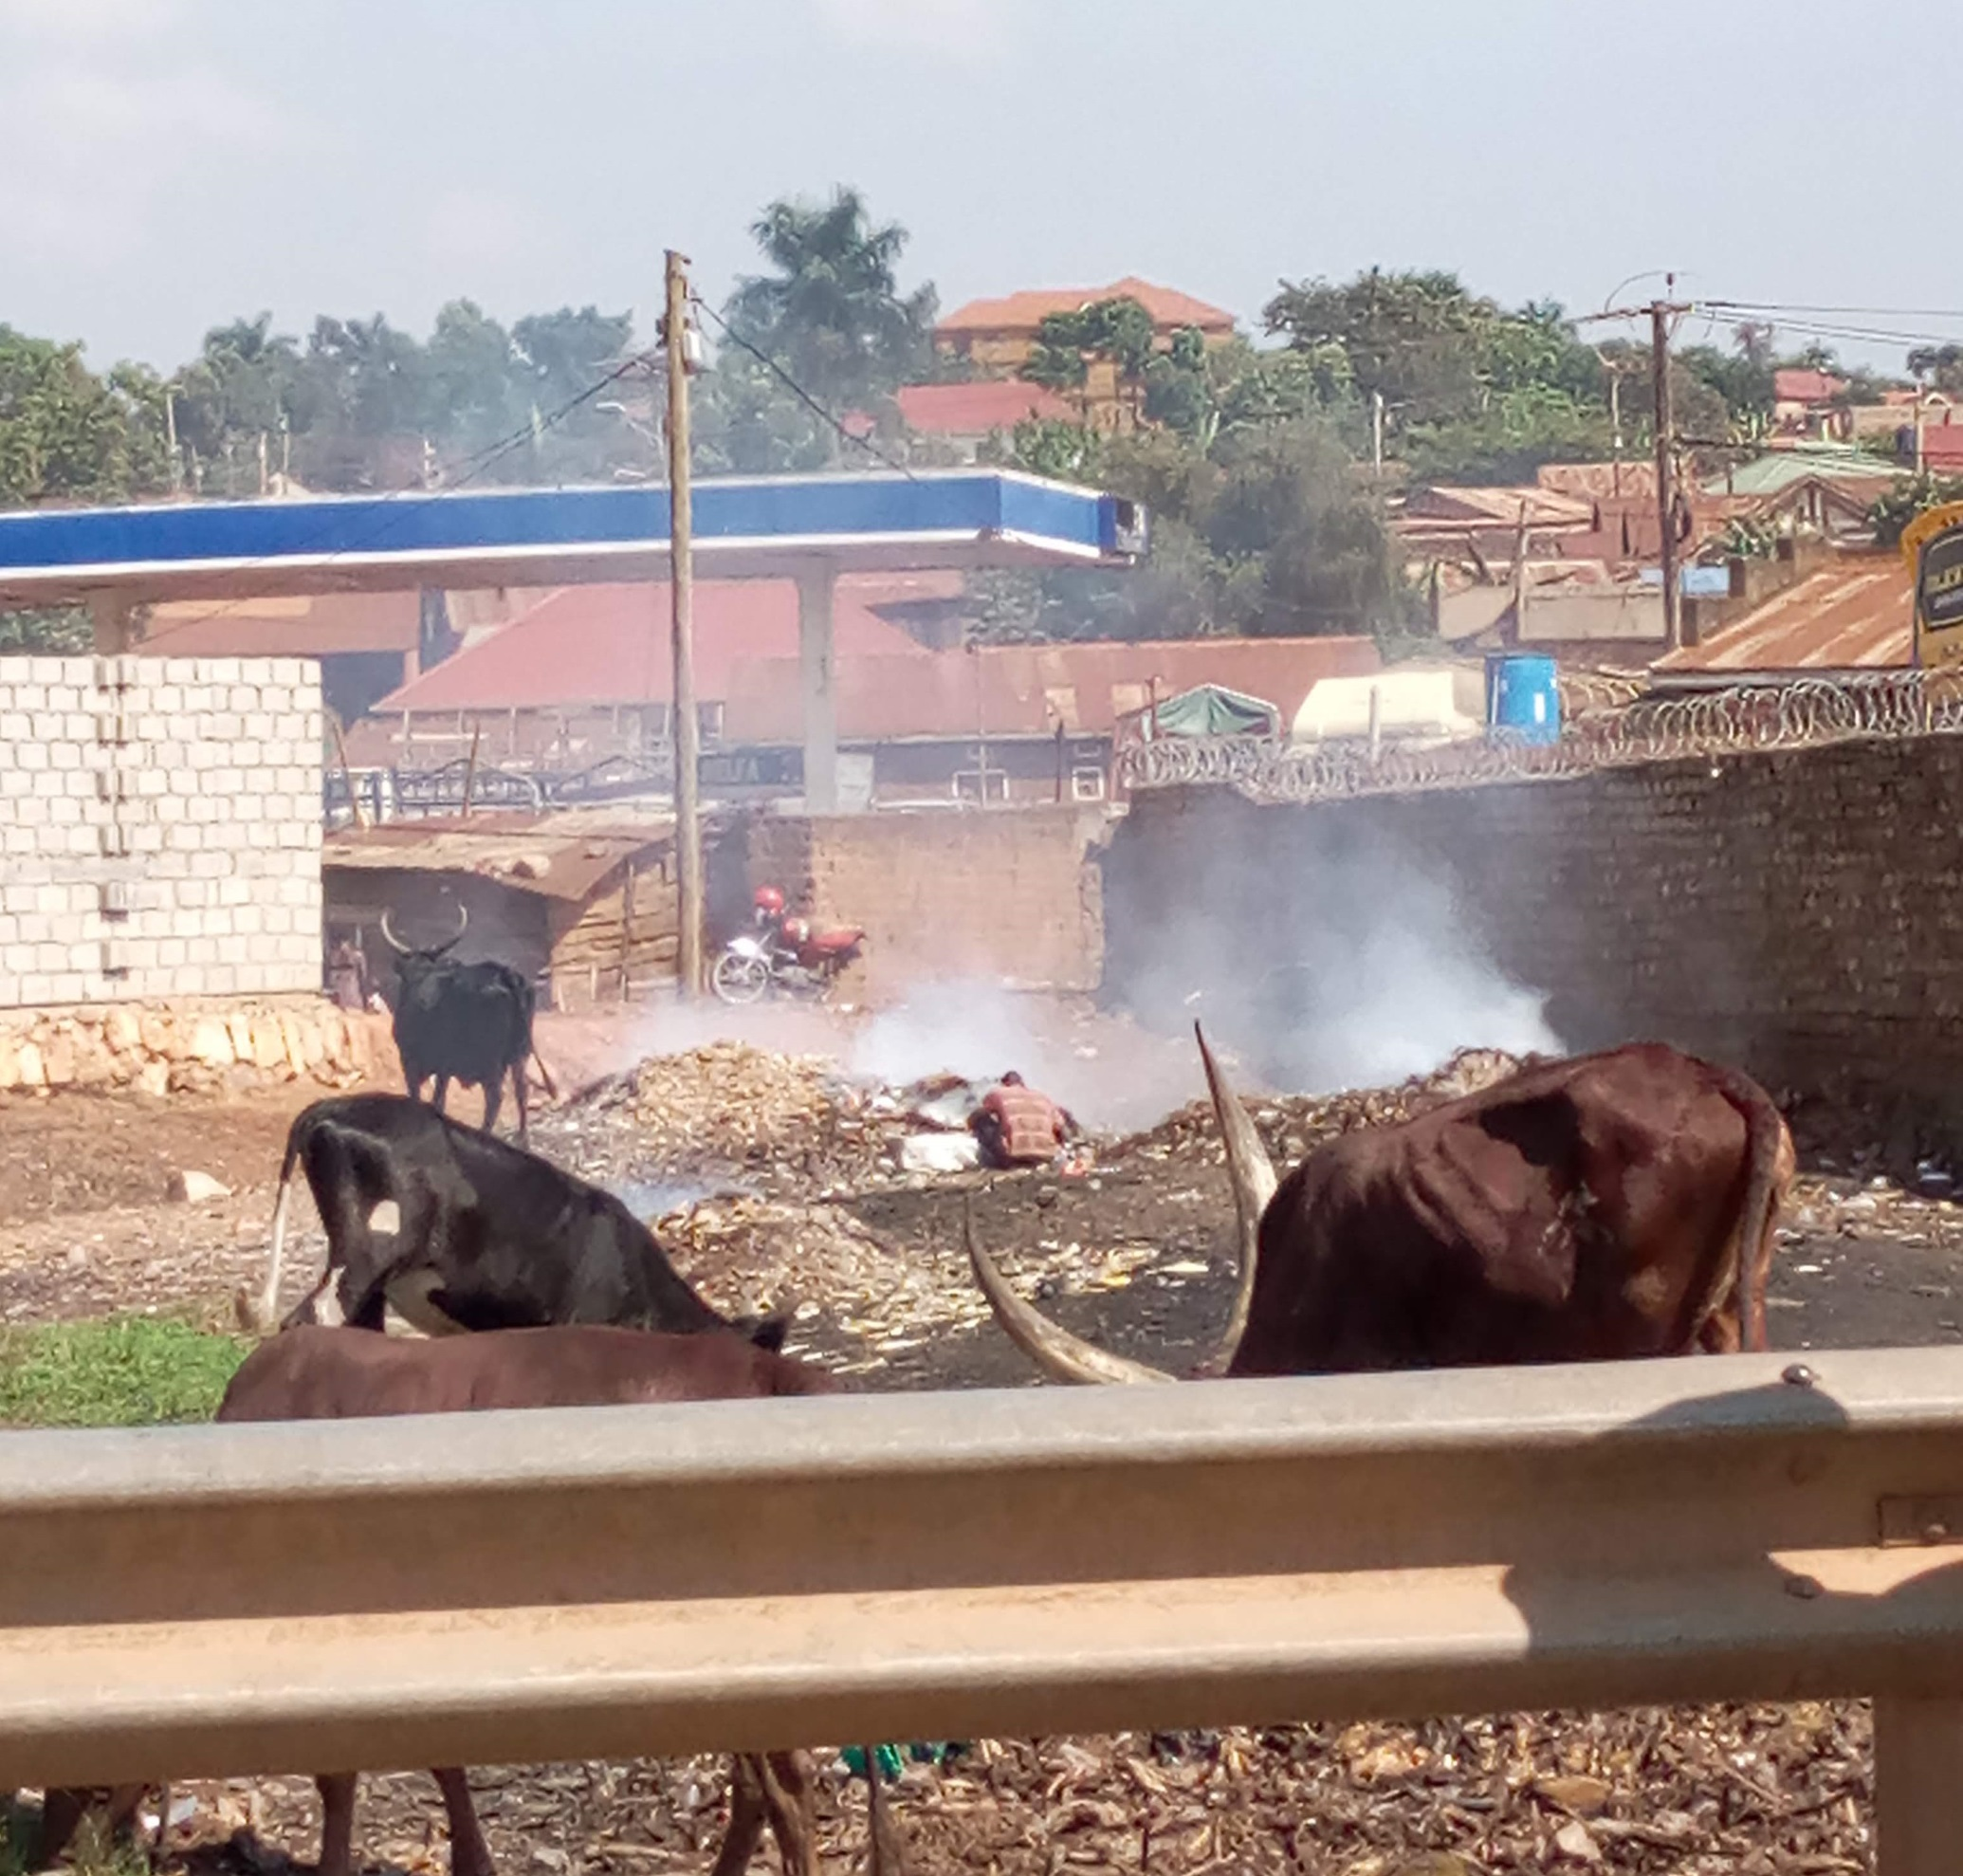 Burning rubbish among cattle_2072